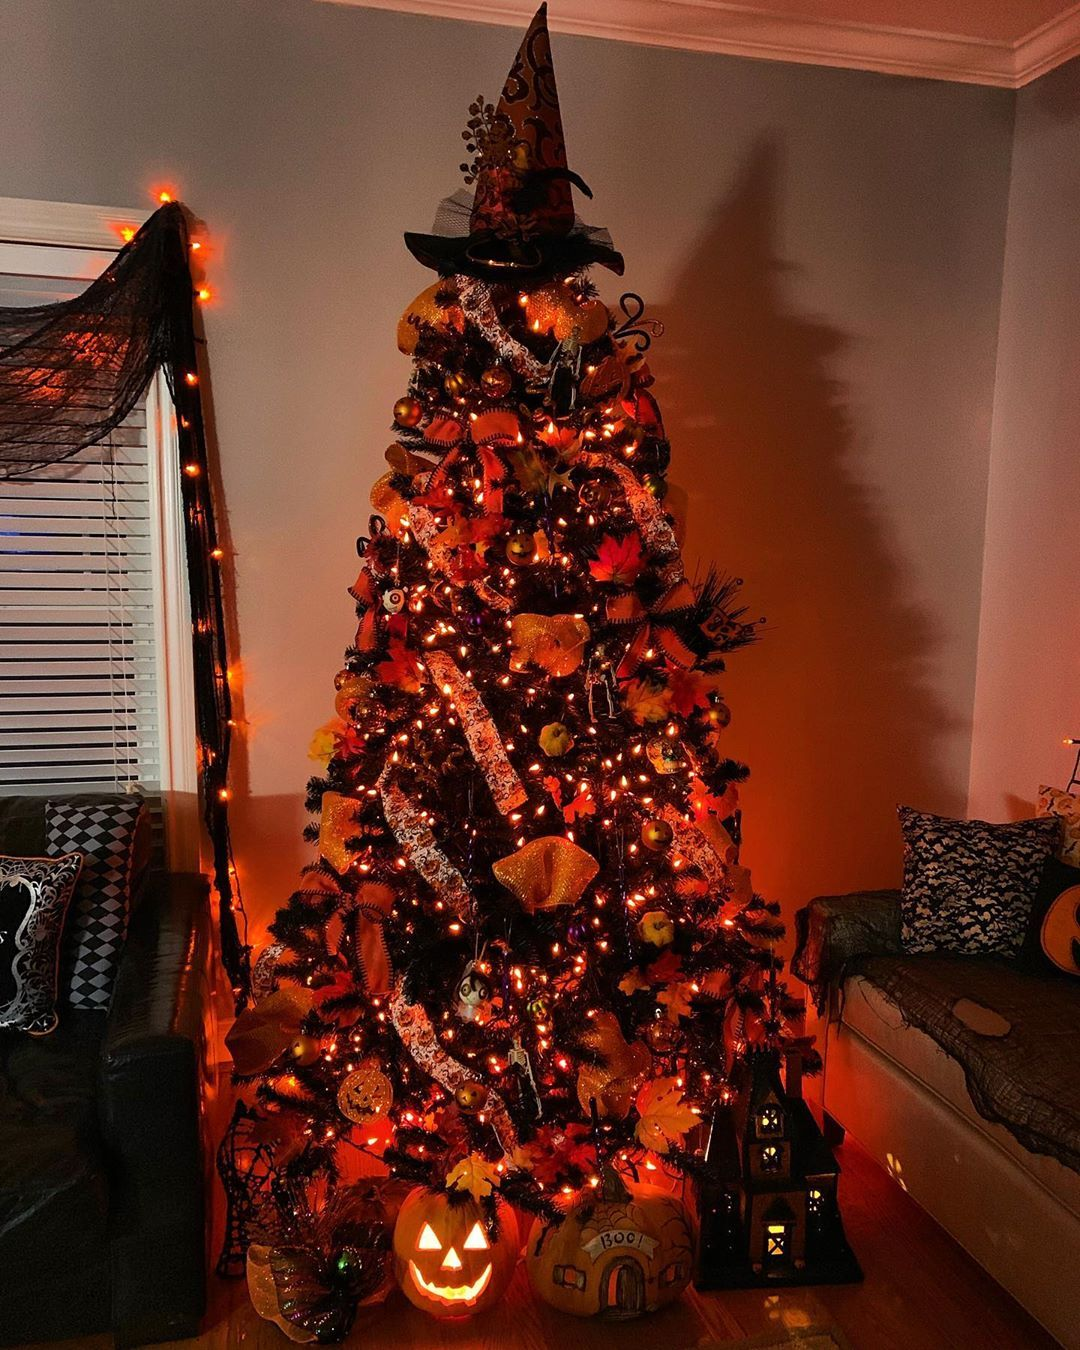 Halloween Christmas Trees Are a Thing Now, and They're